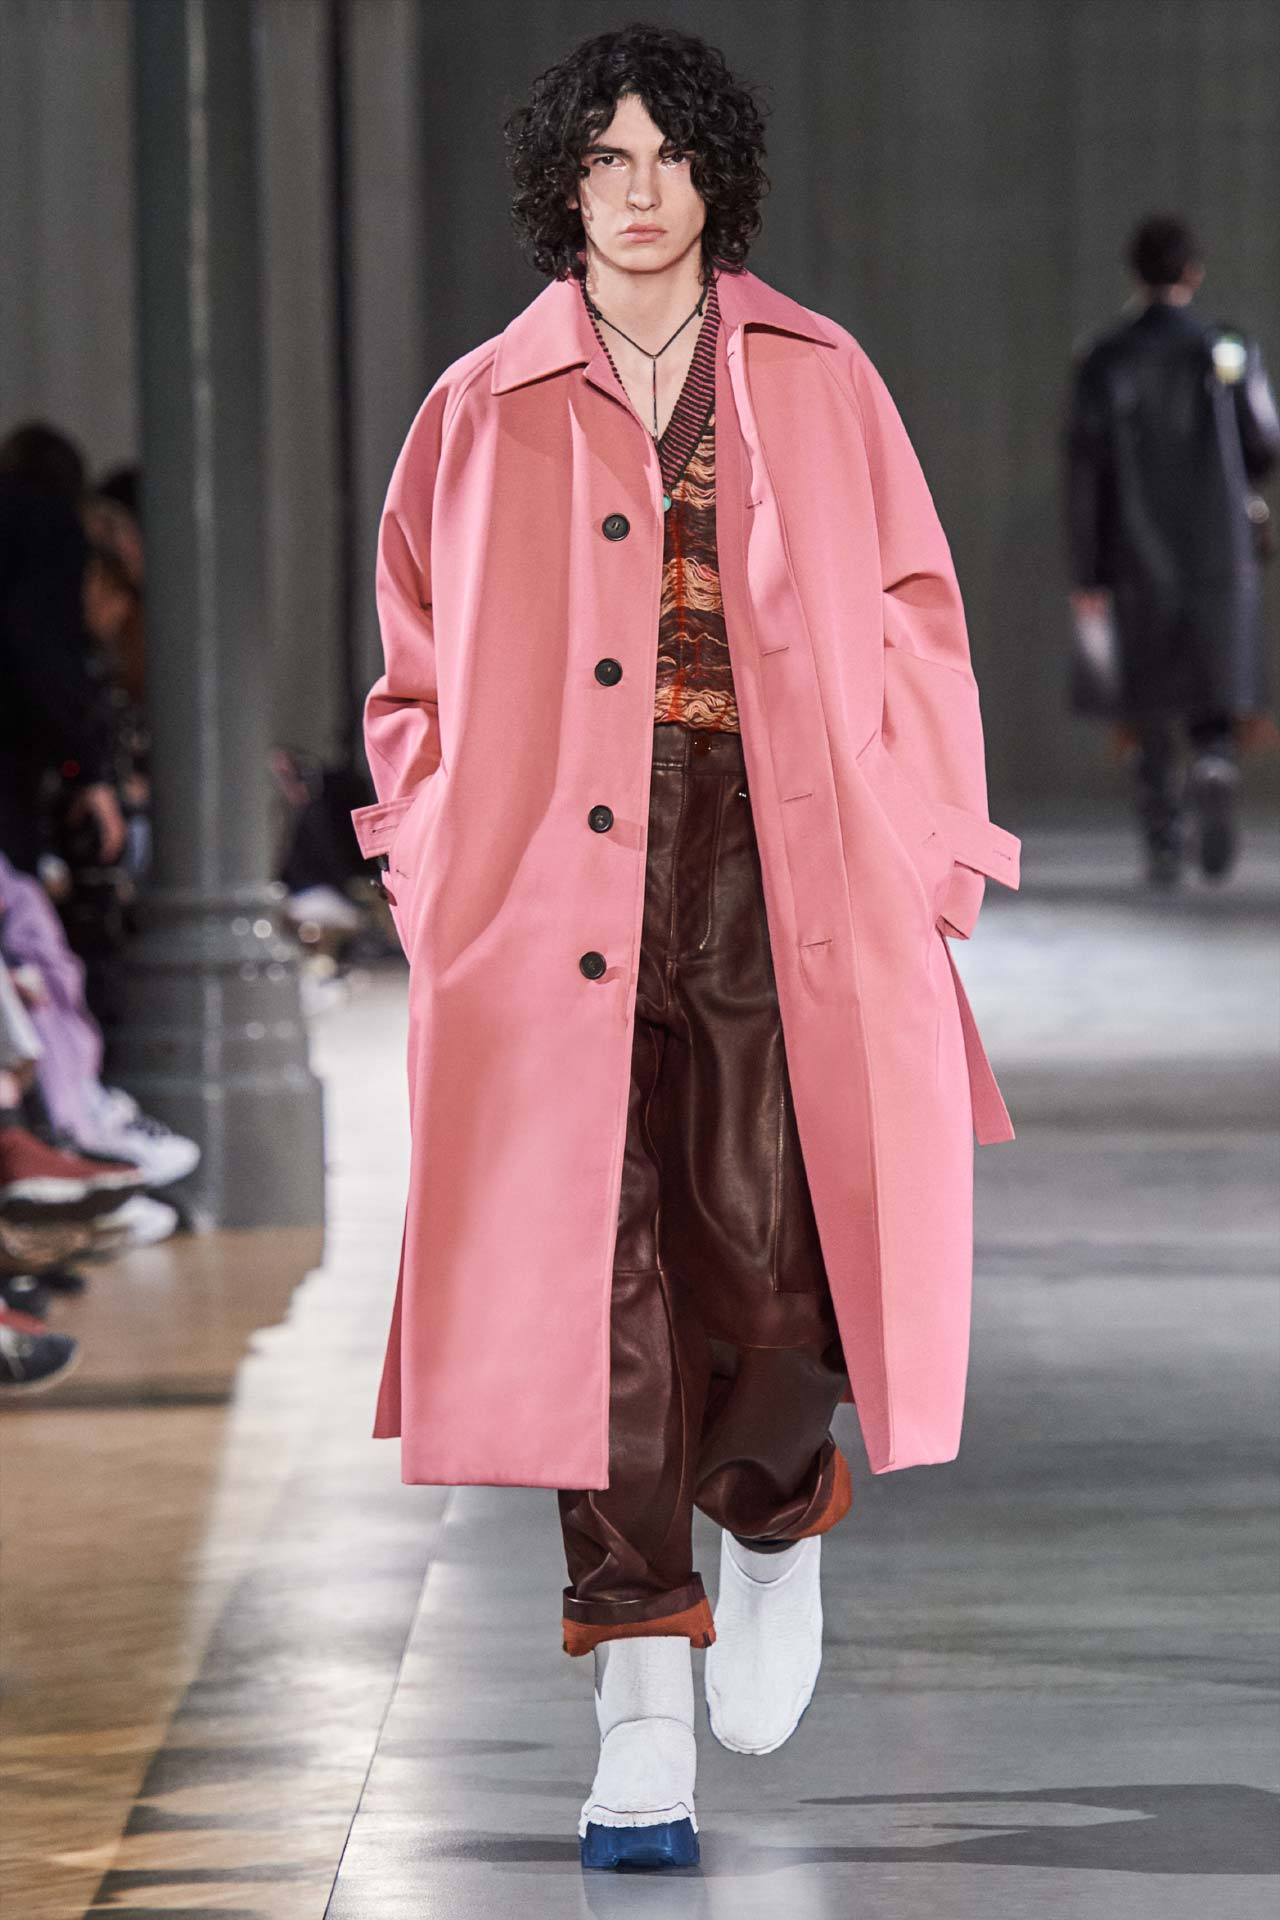 Look Fall/Winter 2019, image 38